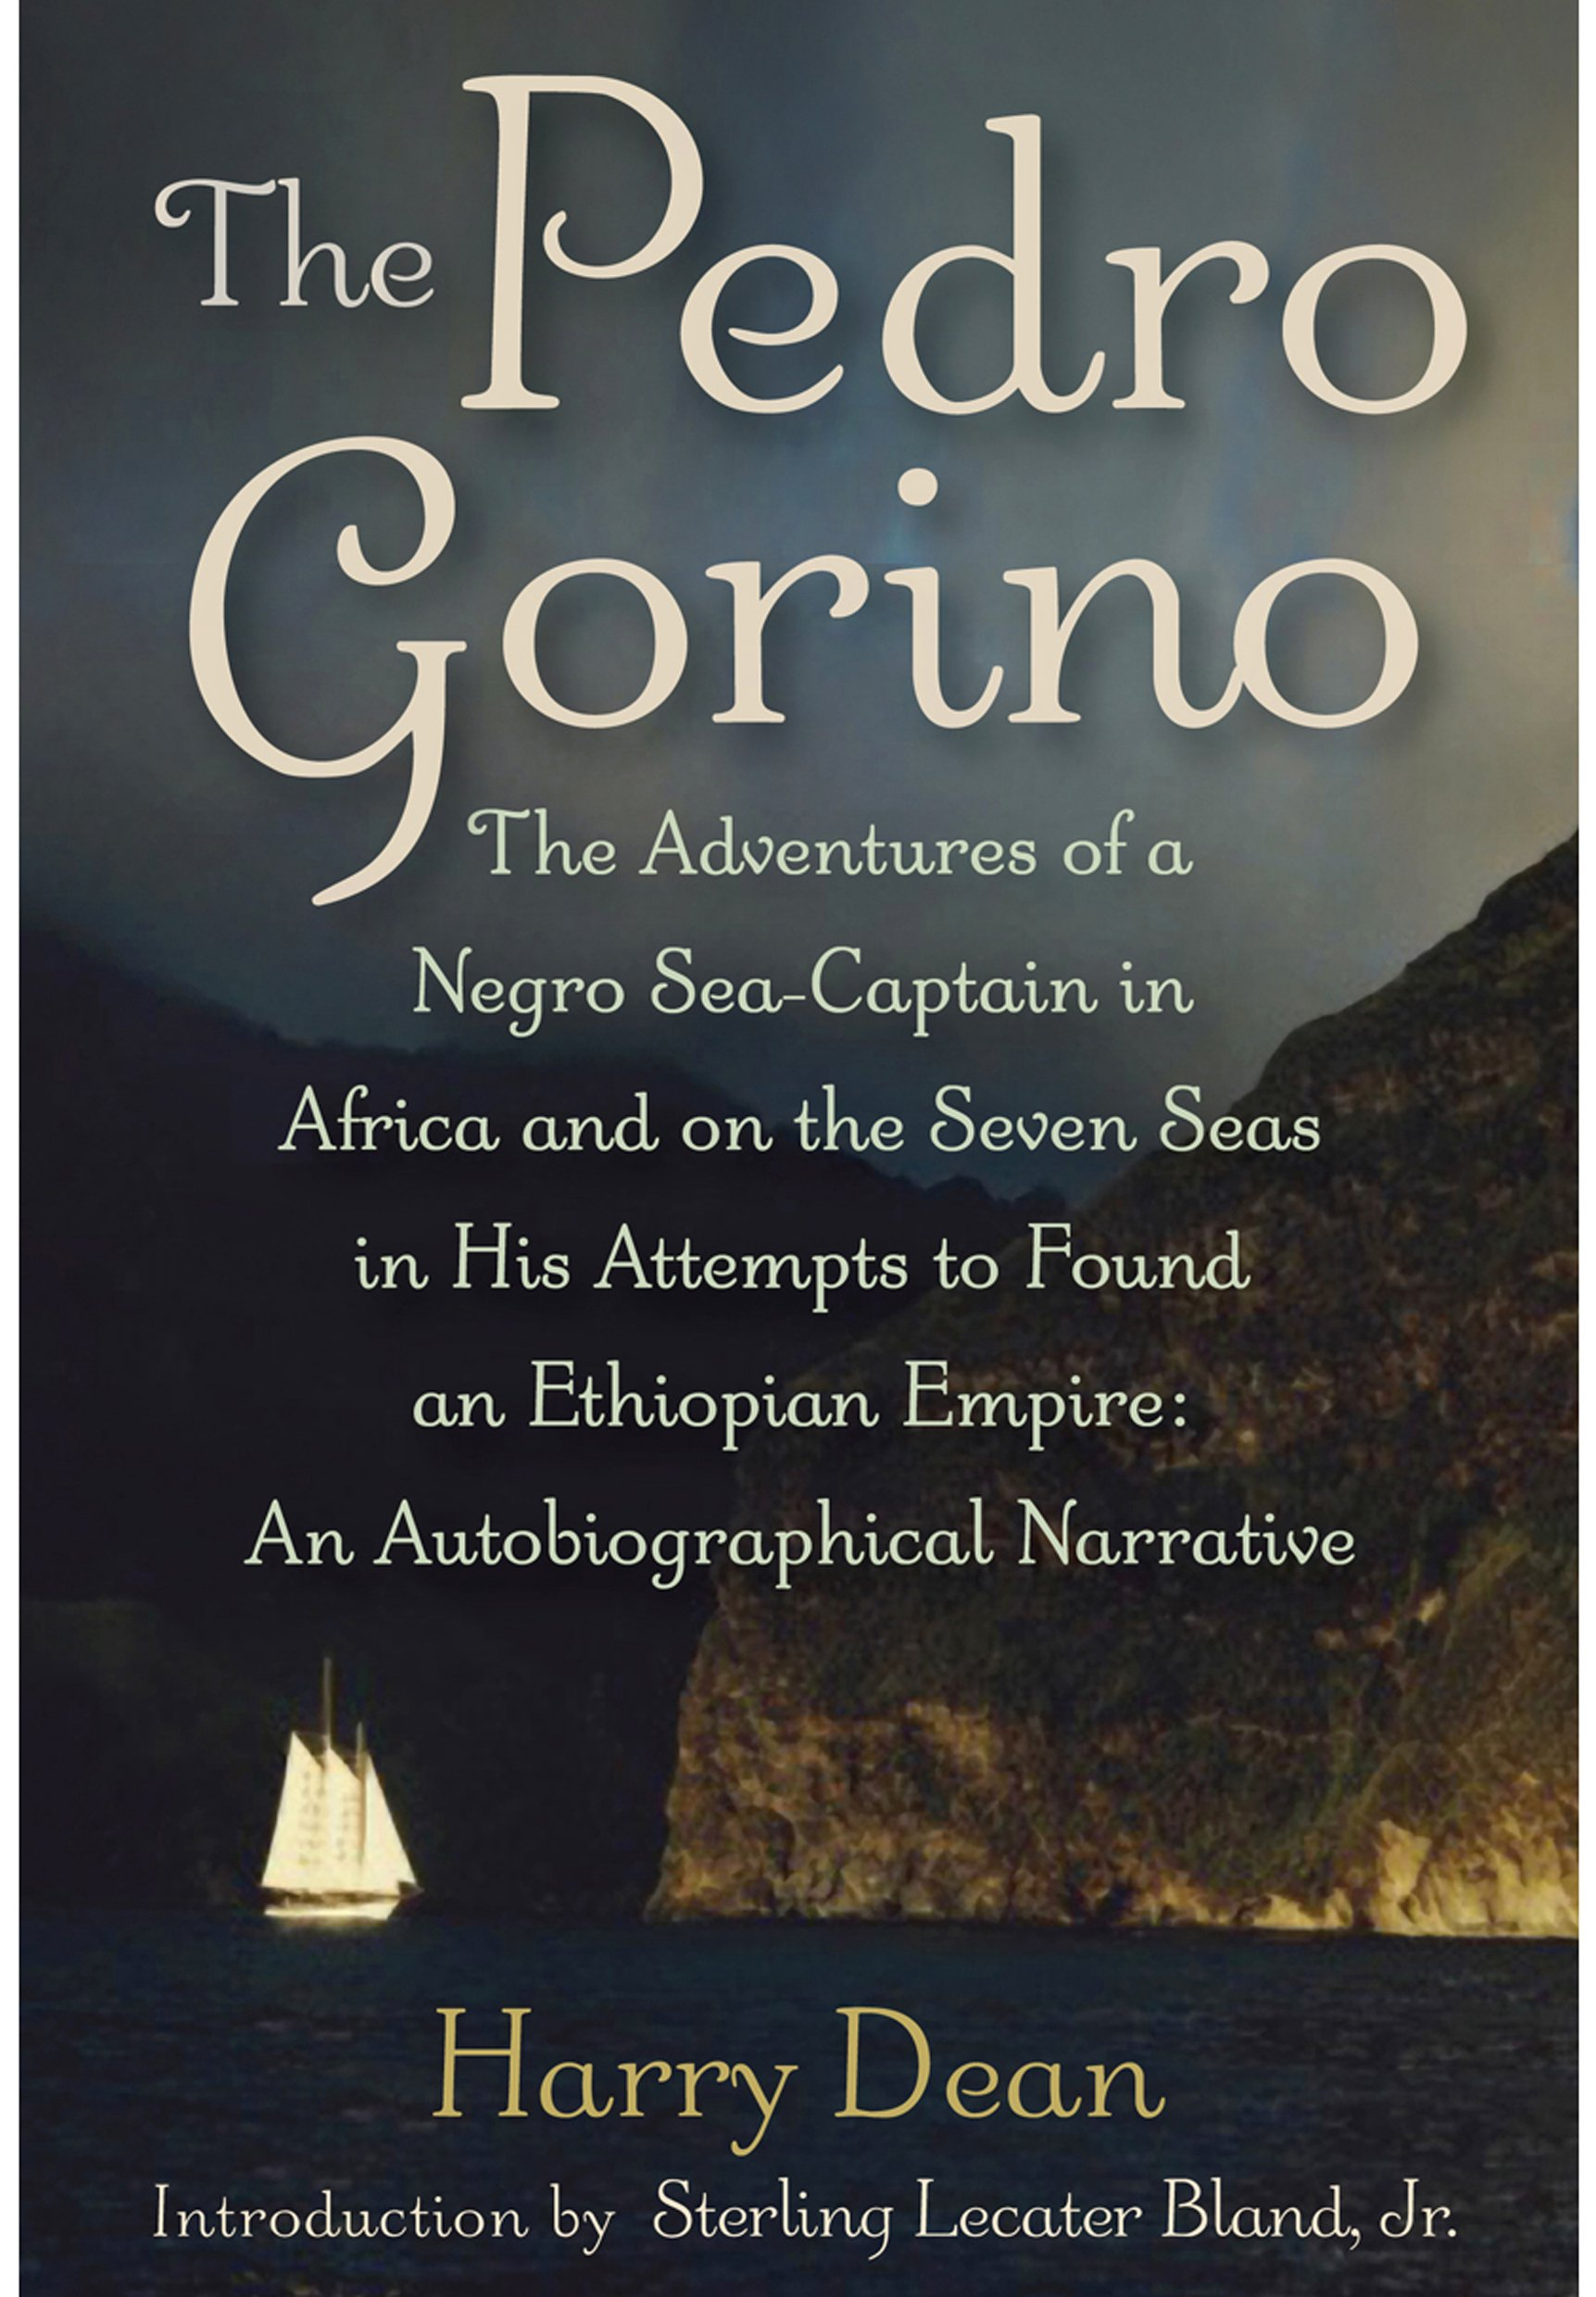 Read Online The Pedro Gorino: The Adventures of a Negro Sea-Captain in Africa and on the Seven Seas in His Attempts to Found an Ethiopian Empire pdf epub